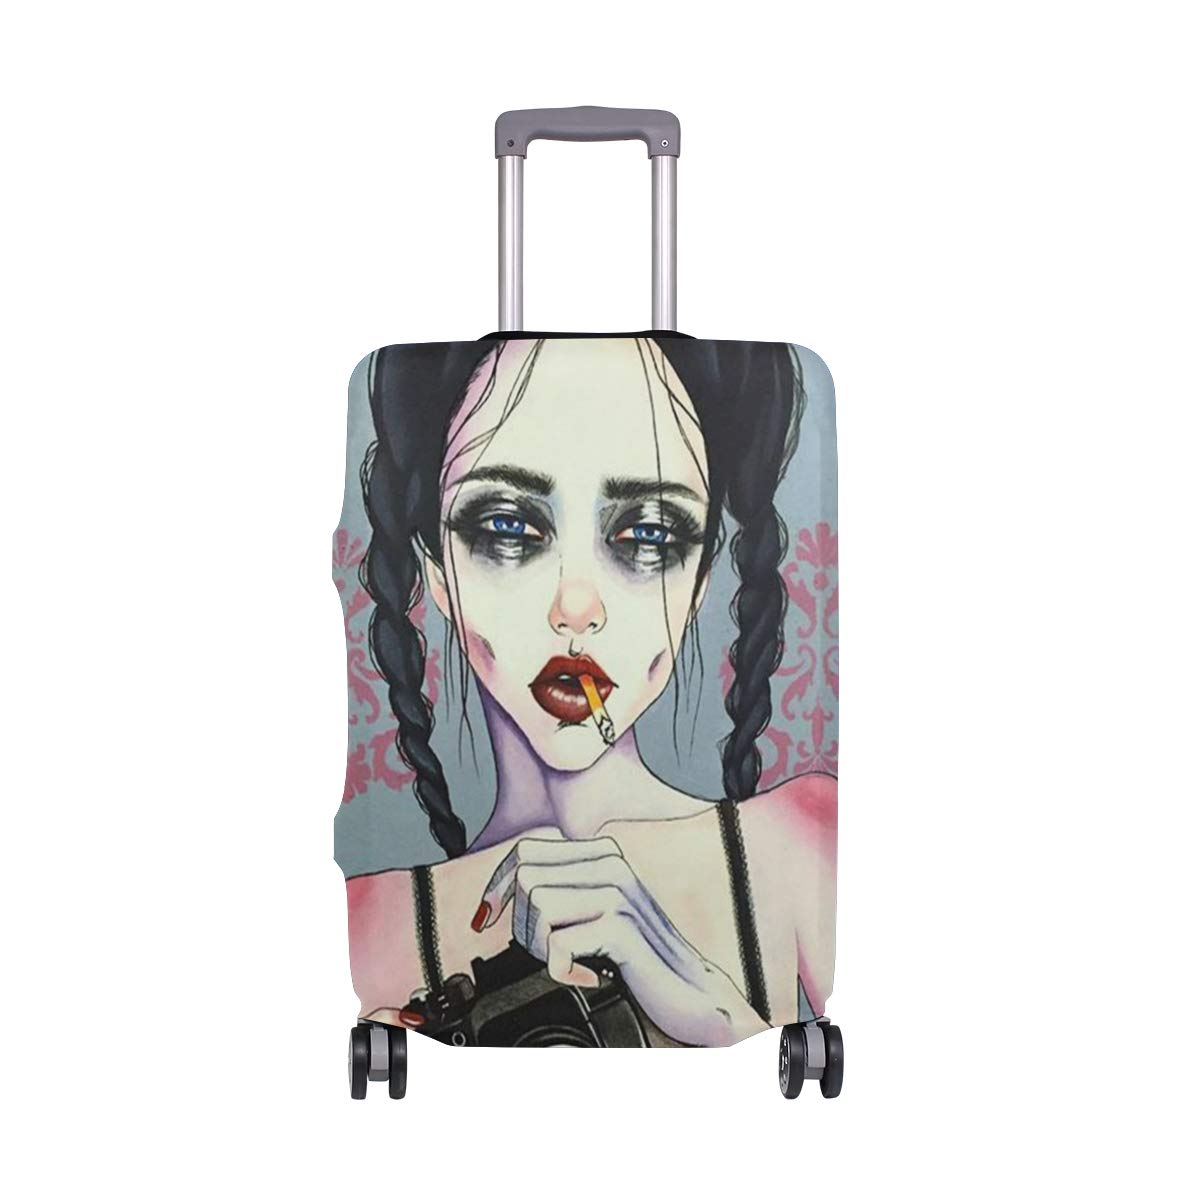 Women Art Print Luggage Covers Suitcase Protector Jacket Dust-proof Anti-thief Dust-proof Case Fits 18-32 Inch Luggage